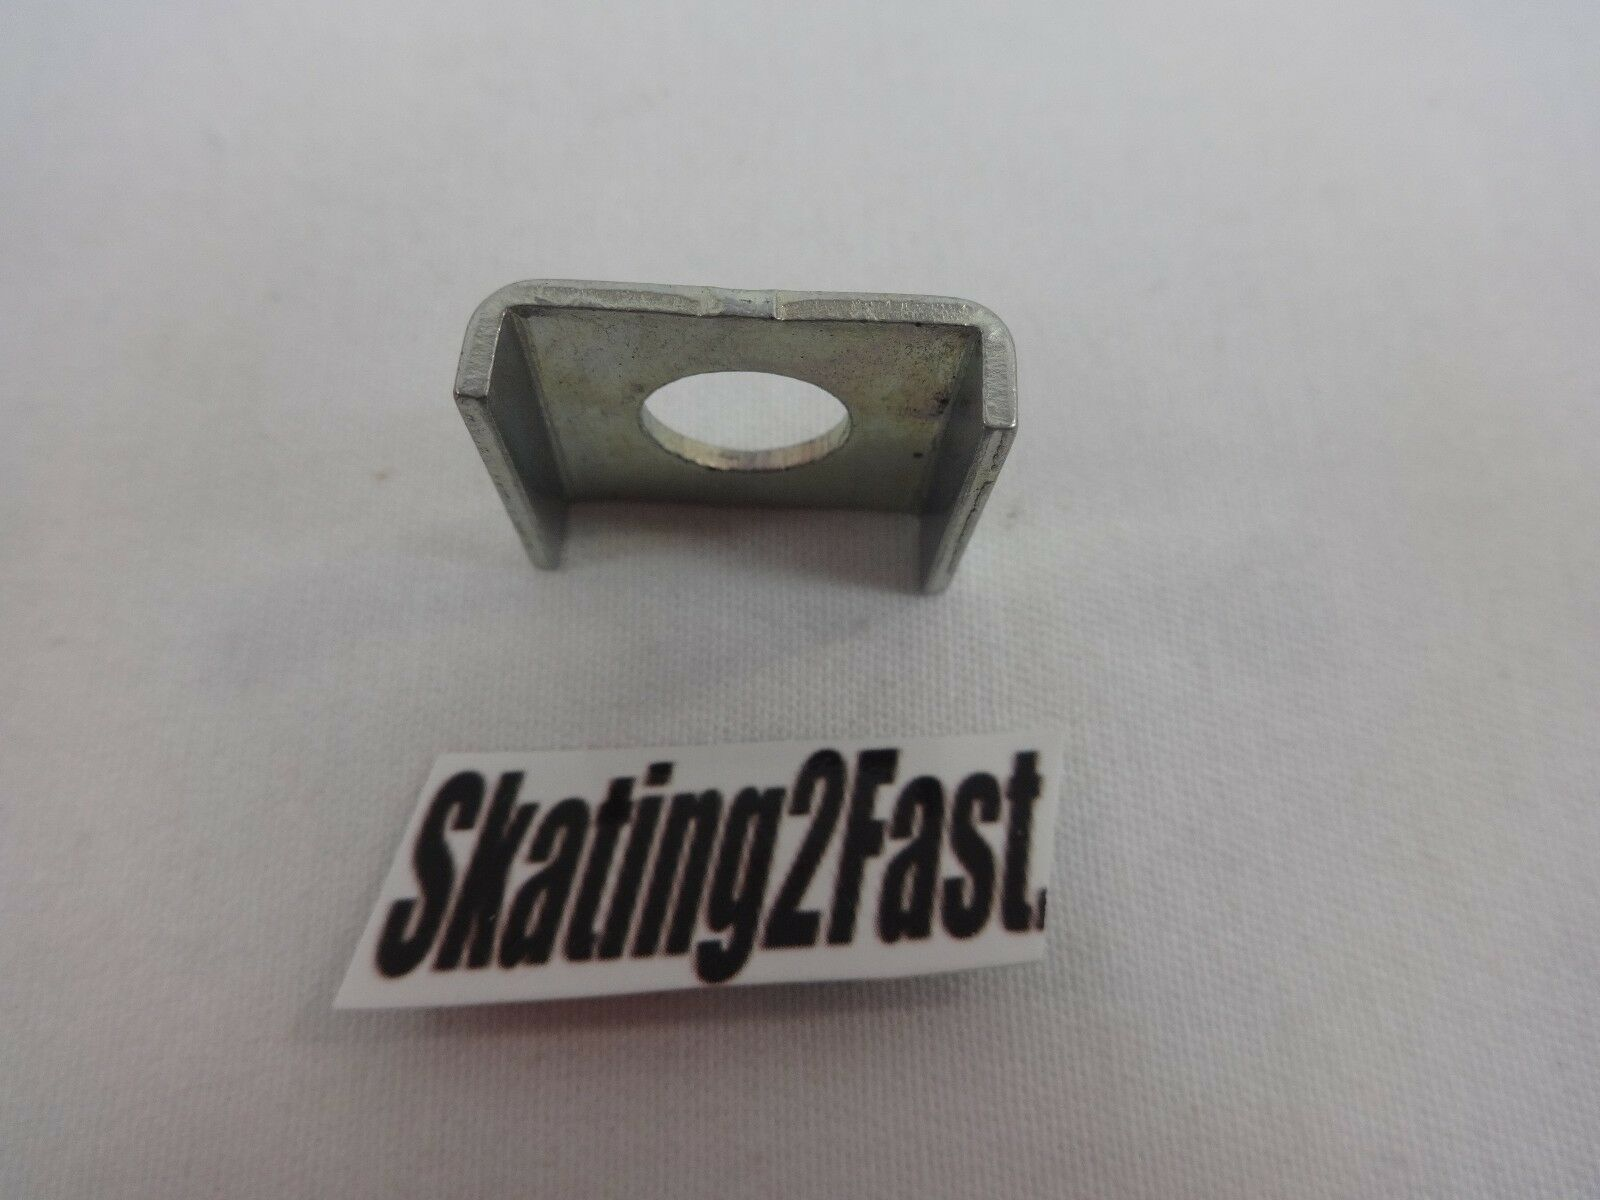 Replacement Saddle Washer LASER LASER Washer Skate Plate NEW 0cdd47